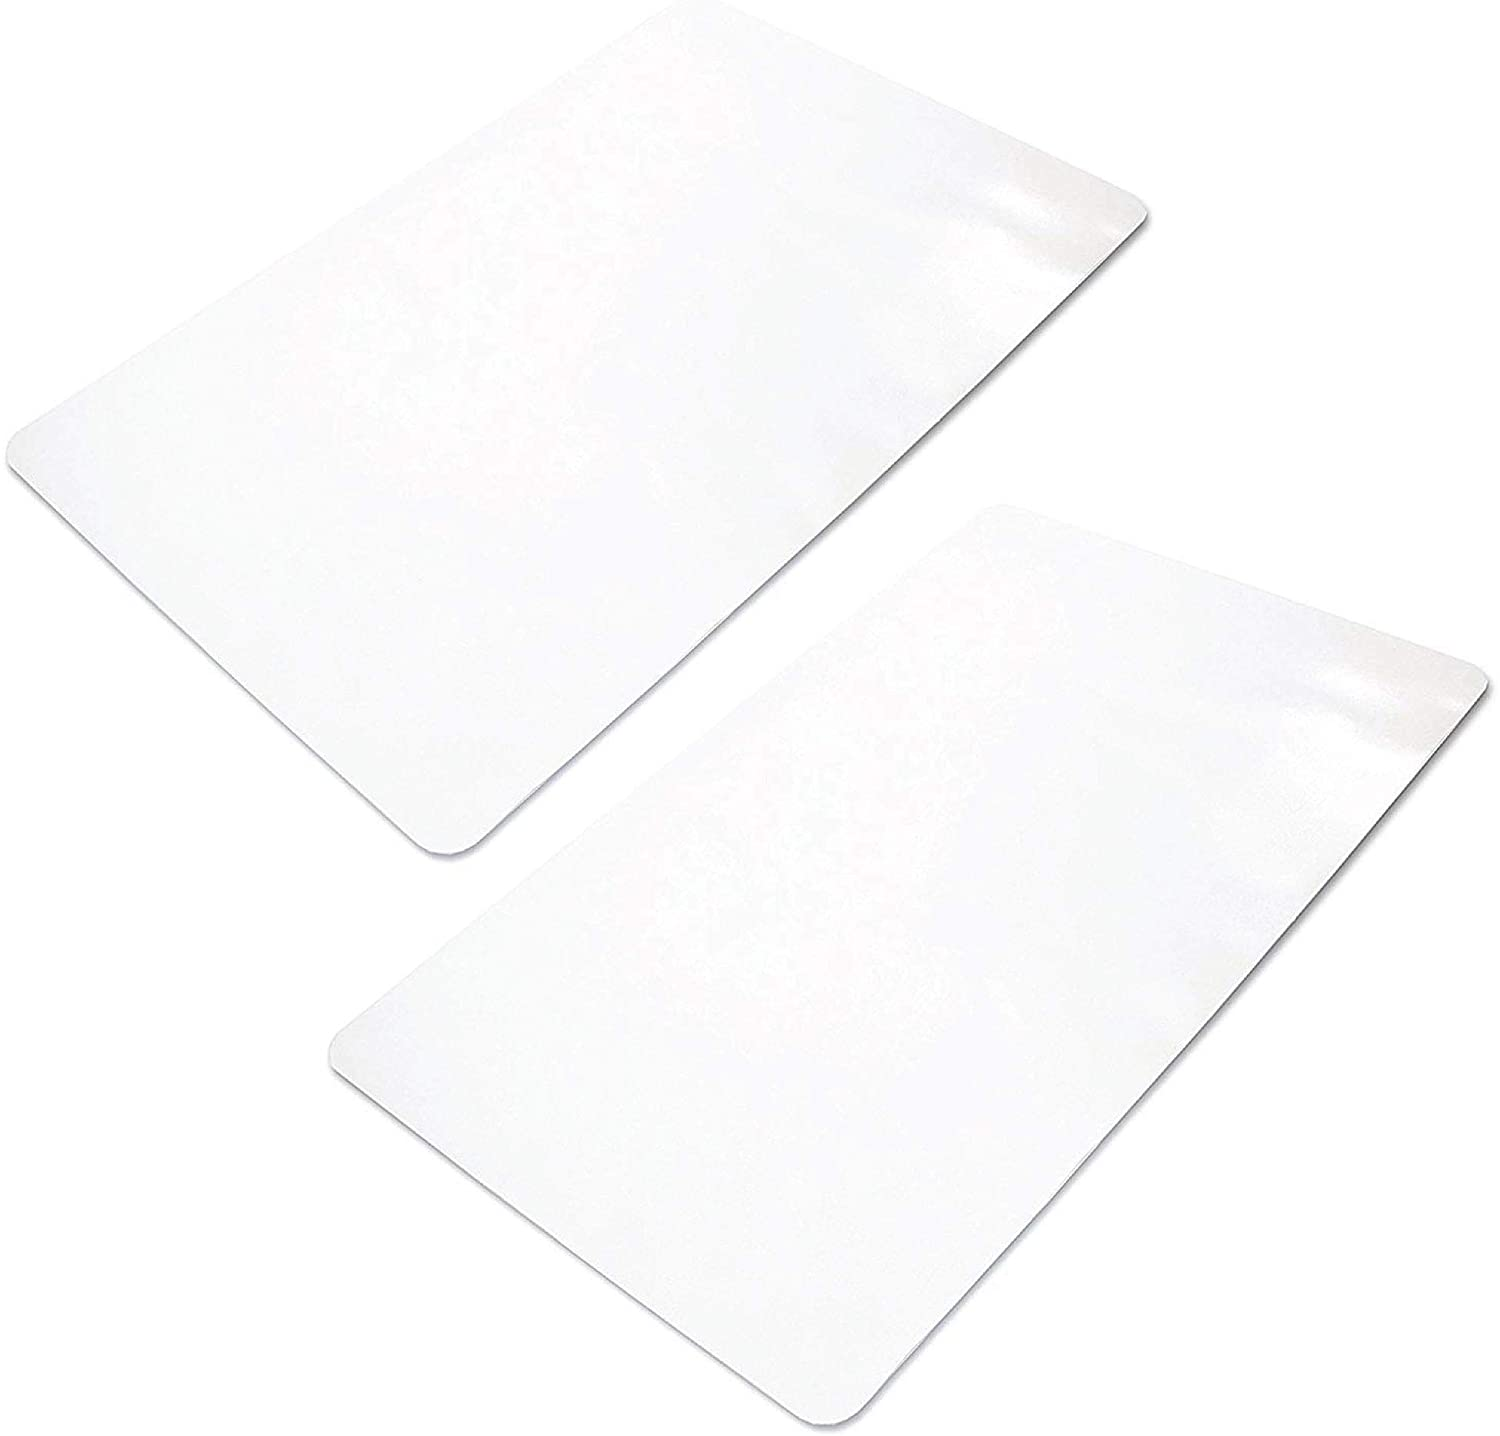 """Ilyapa Office Chair Mat for Hard Floors 2 Pack 30"""" x 48"""" Heavy Duty Clear, PVC Chair Mat for Hardwood and Tile Floors, Protective Floor Mat for Home or Office"""